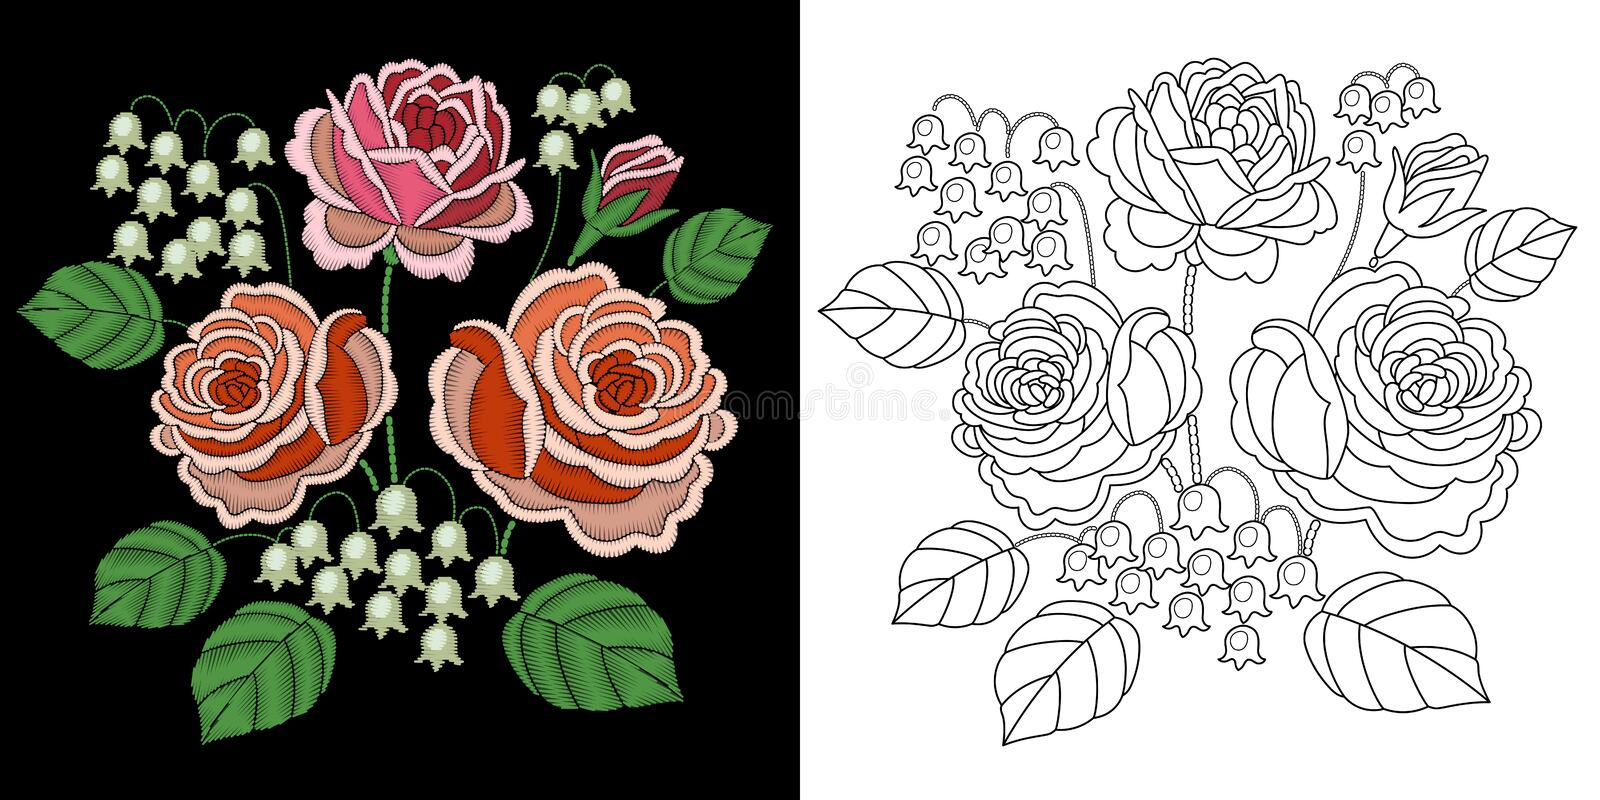 Embroidery floral design royalty free stock images